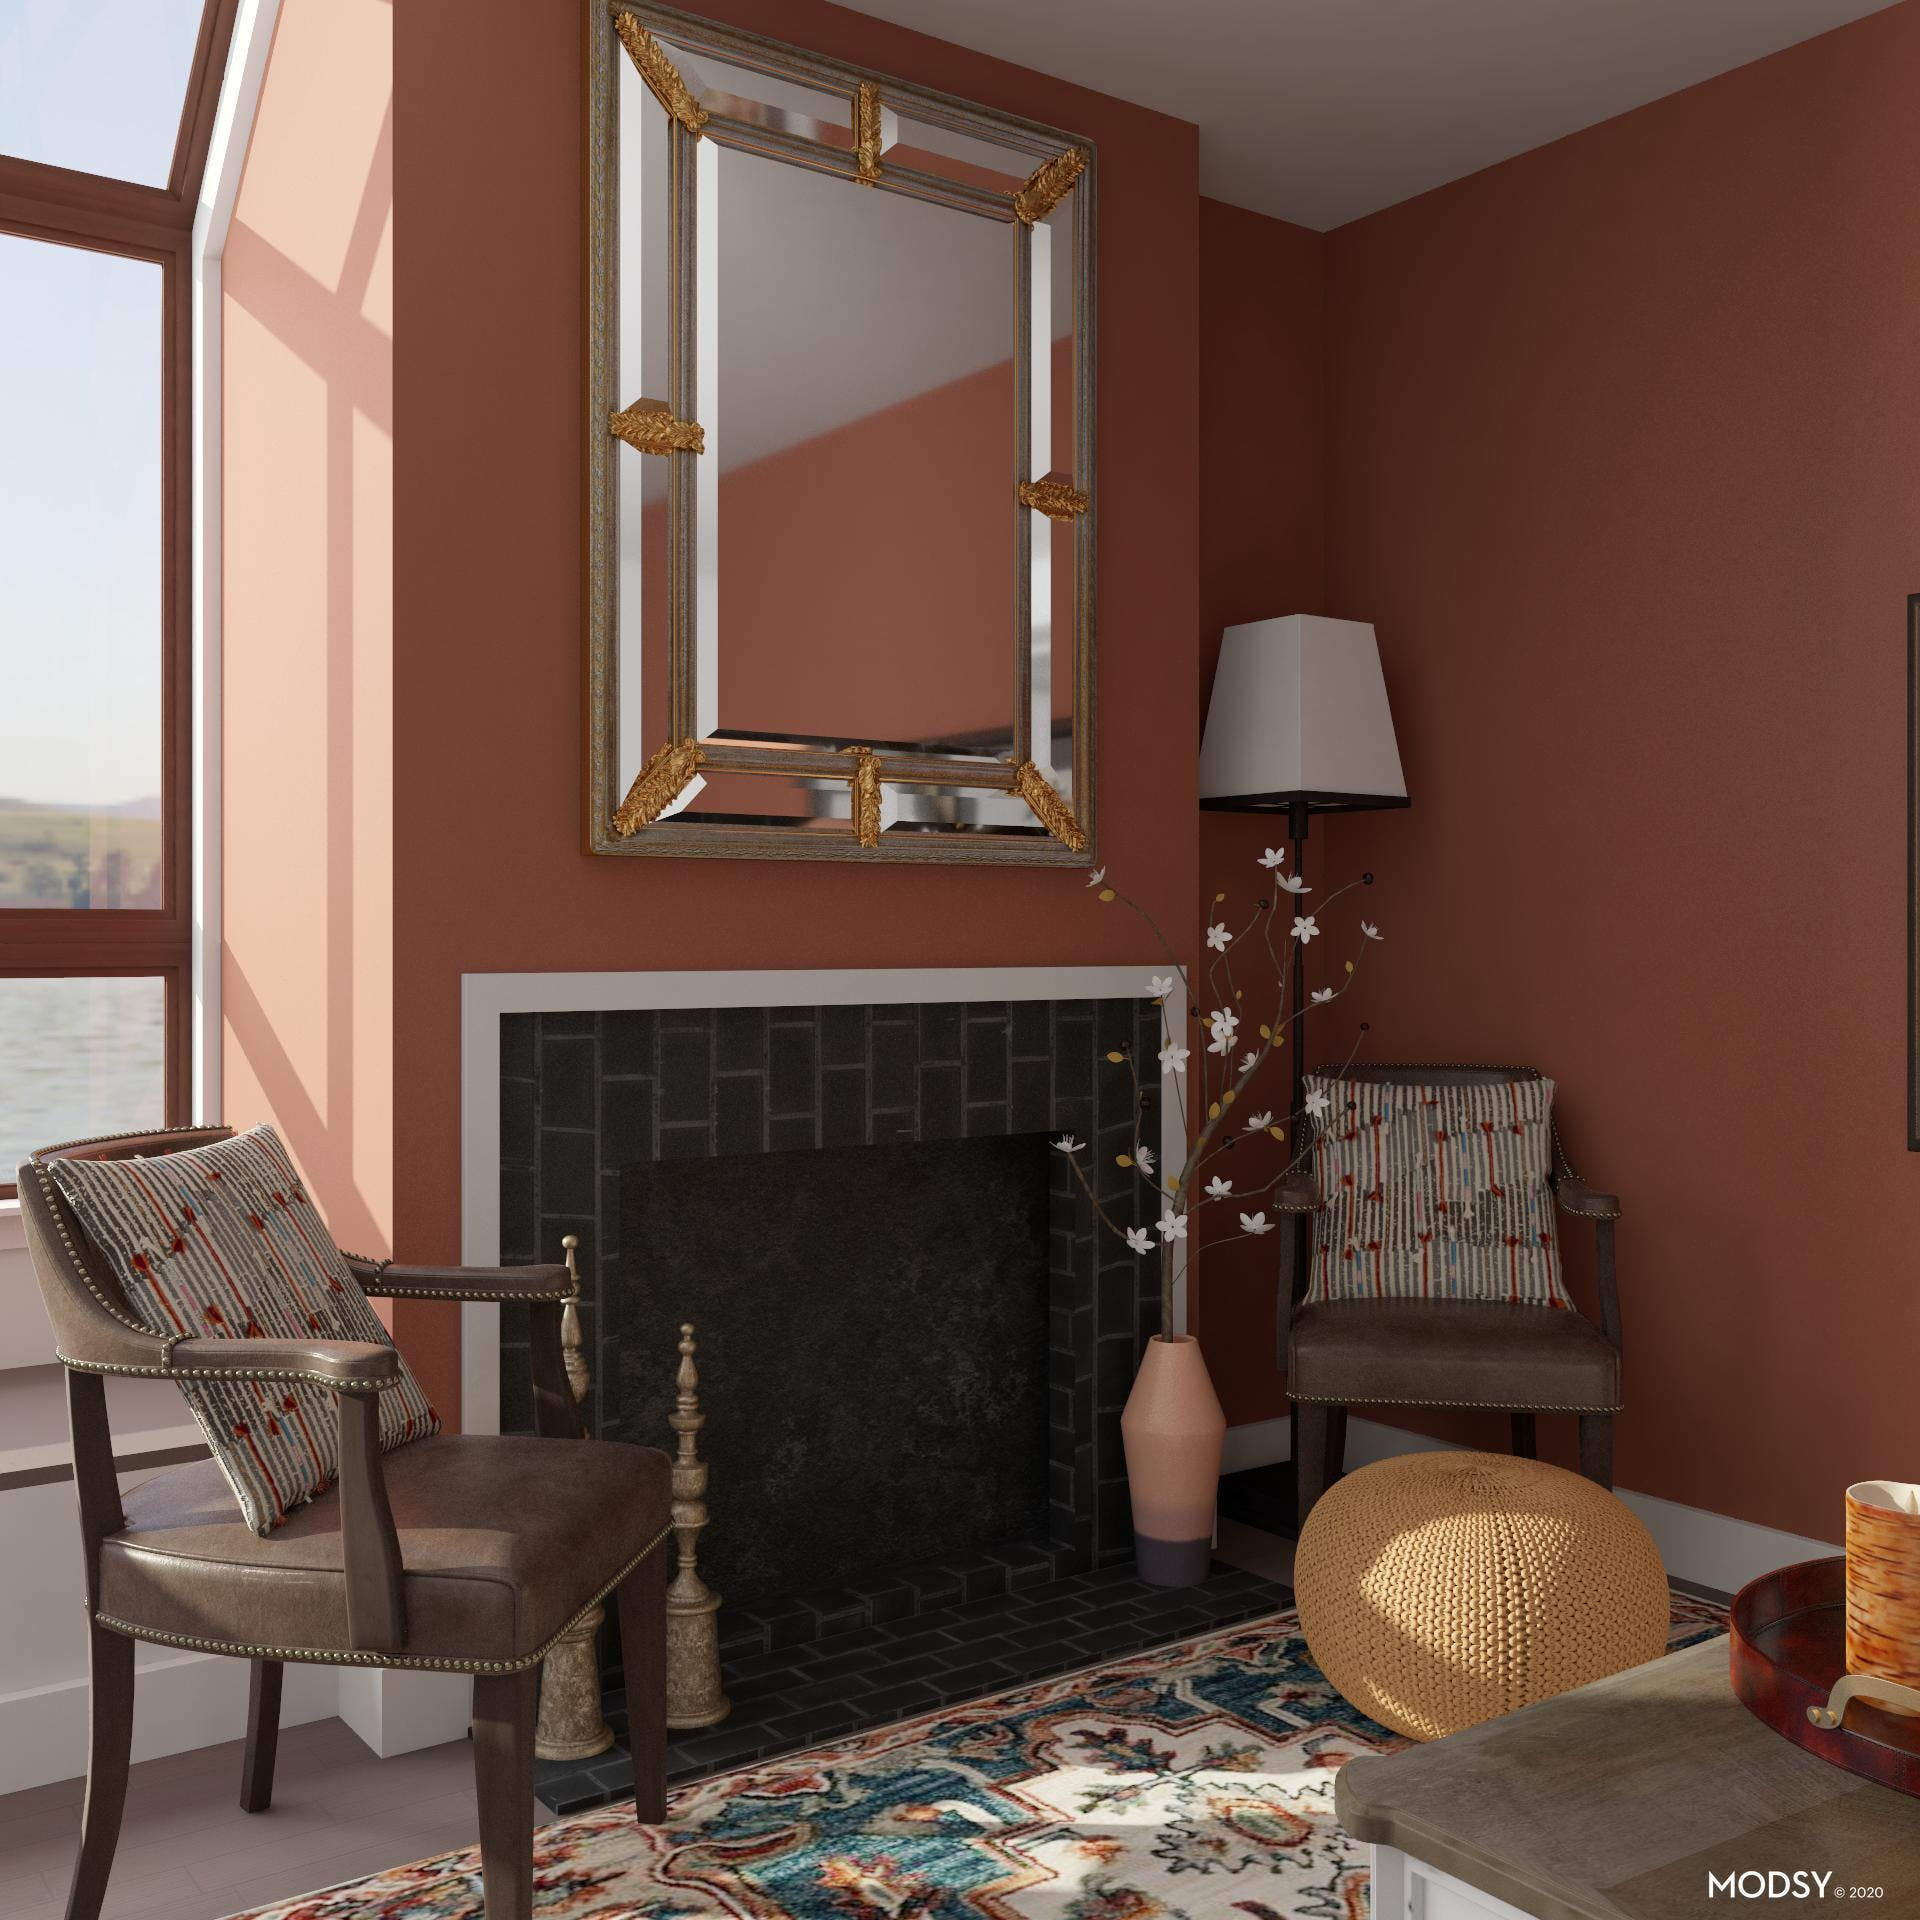 Simple Fireplace Gets Dressed Up